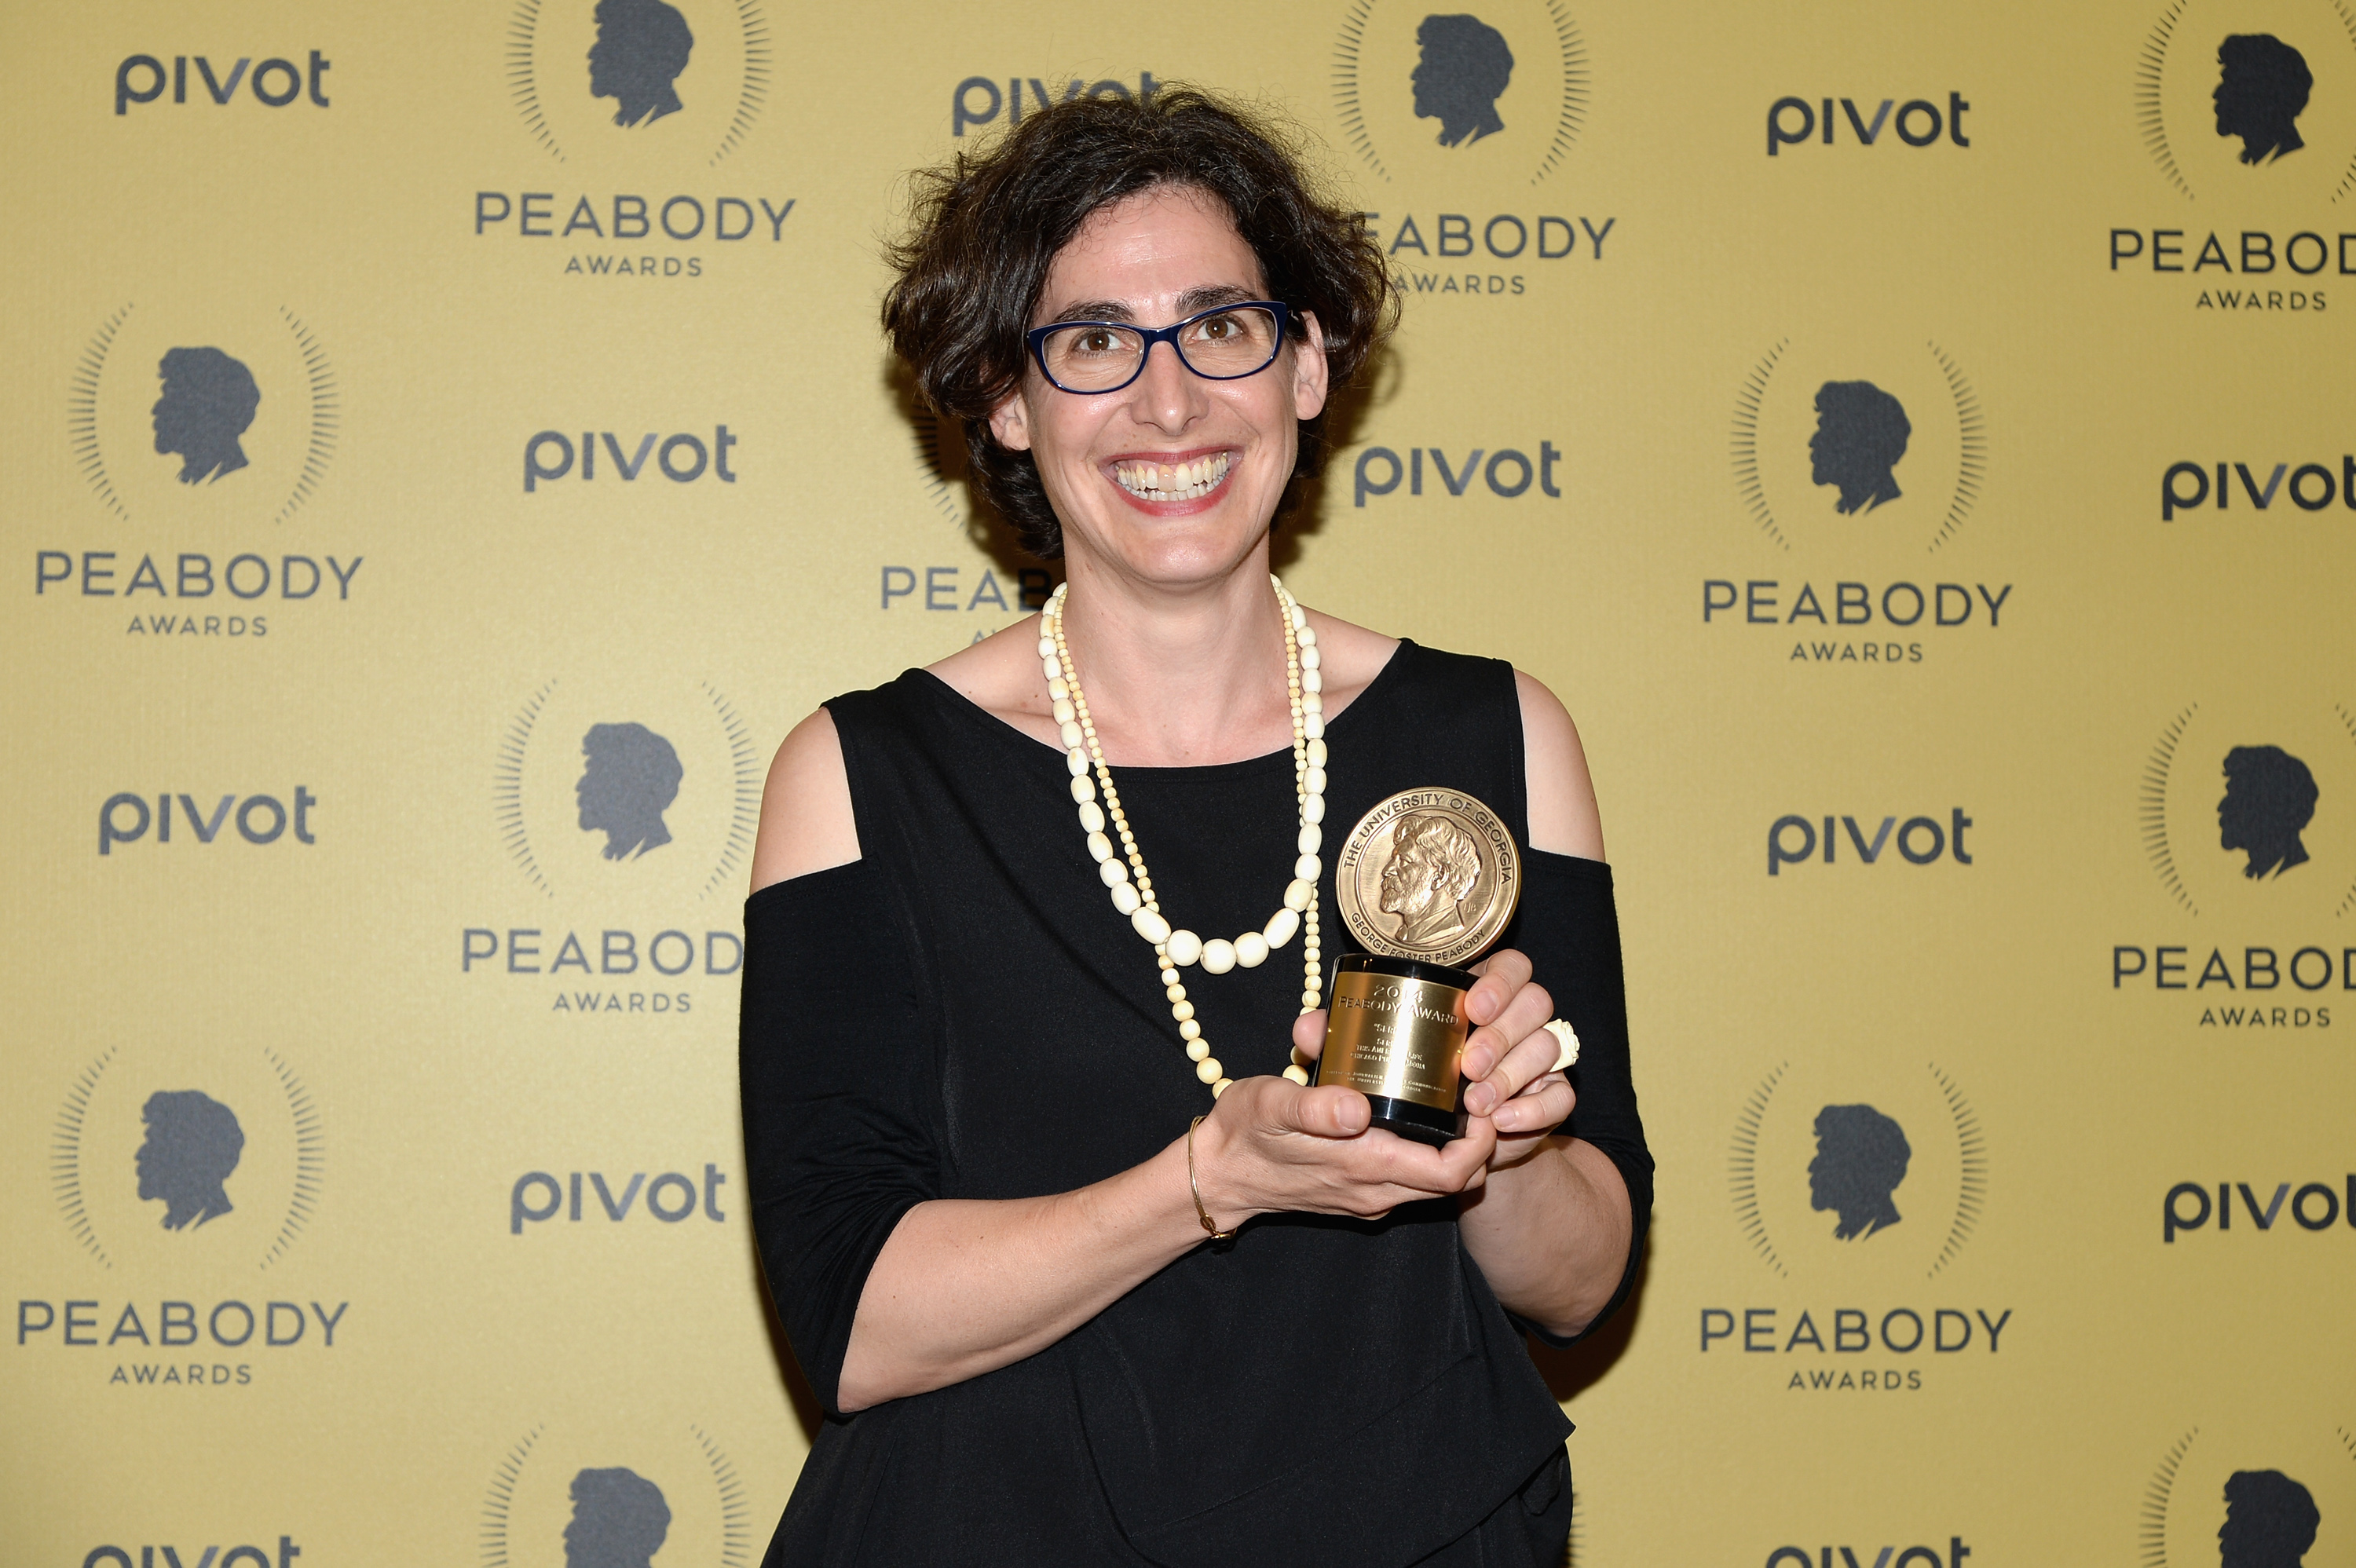 Sarah Koenig attends The 74th Annual Peabody Awards Ceremony at Cipriani Wall Street on May 31, 2015 in New York City.